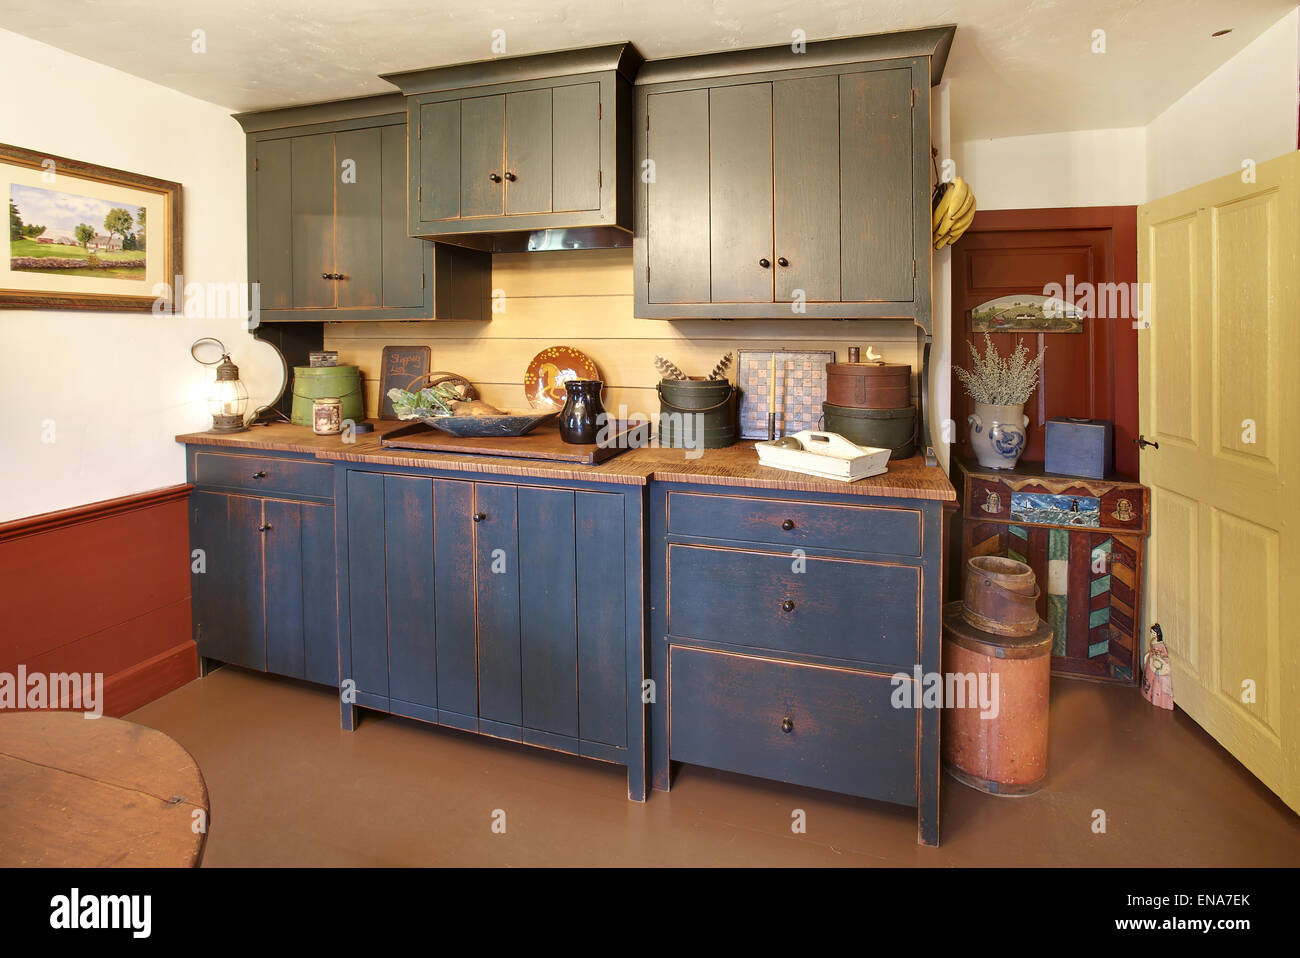 The kitchen in a primitive colonial style reproduction home - Stock Image